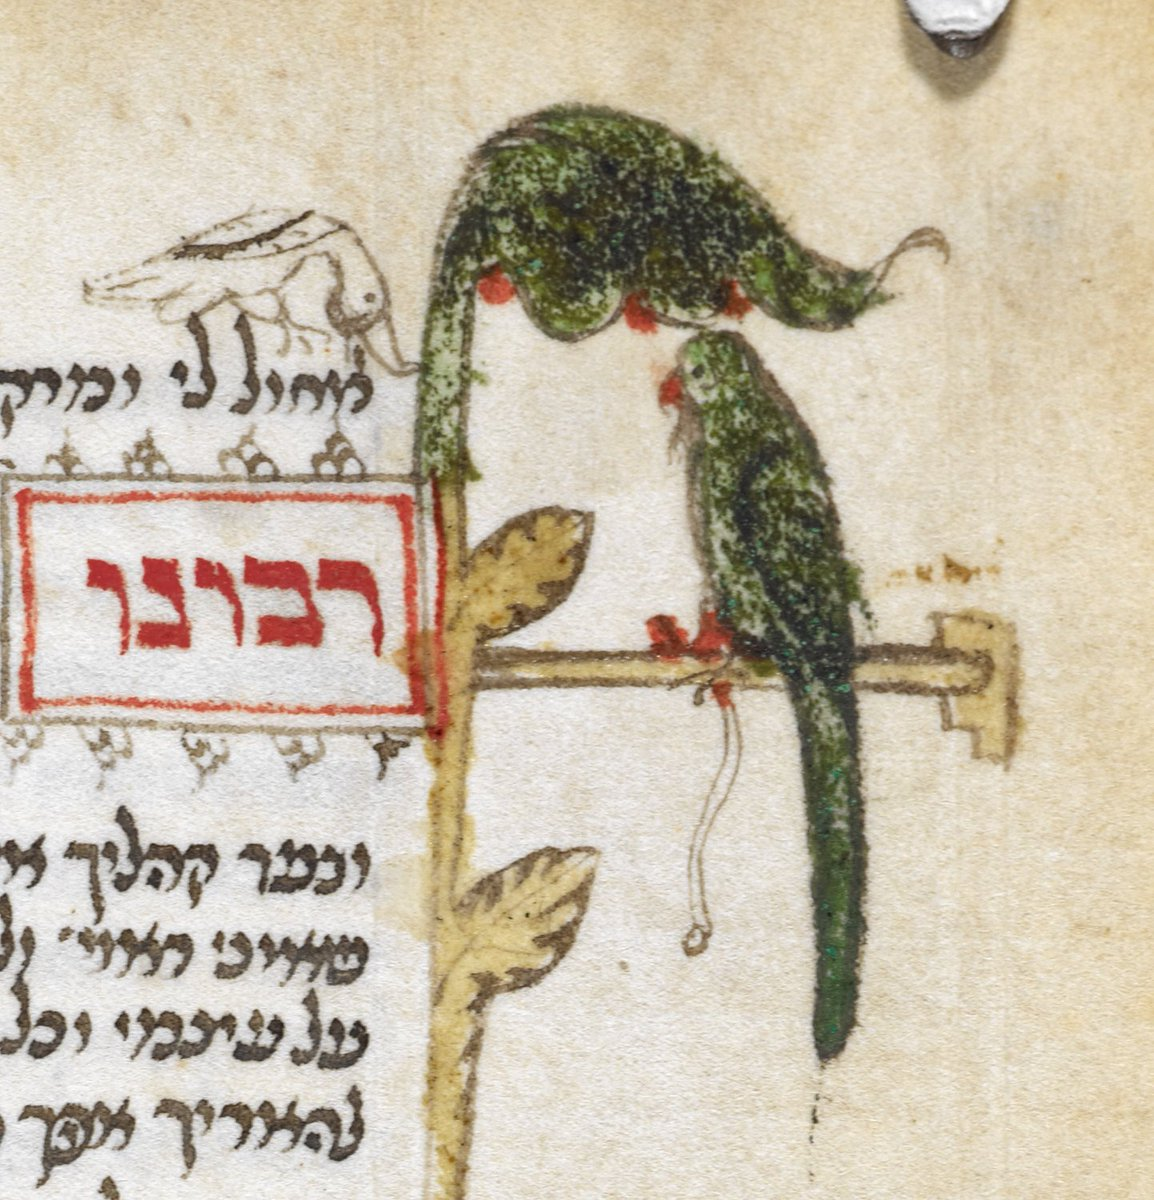 There were dozens of green parakeets in the trees yesterday. A sign that bad weather is approaching?🦜🌳🦜🌳🦜Prayer book, Italian rite (Add MS 26968, f. 279v)Book of Hours, Paris Use (Add MS 29433, f. 192r)http://www.bl.uk/catalogues/illuminatedmanuscripts/record.asp?MSID=19249&CollID=27&NStart=26968 …http://www.bl.uk/catalogues/illuminatedmanuscripts/record.asp?MSID=6773&CollID=27&NStart=29433 …